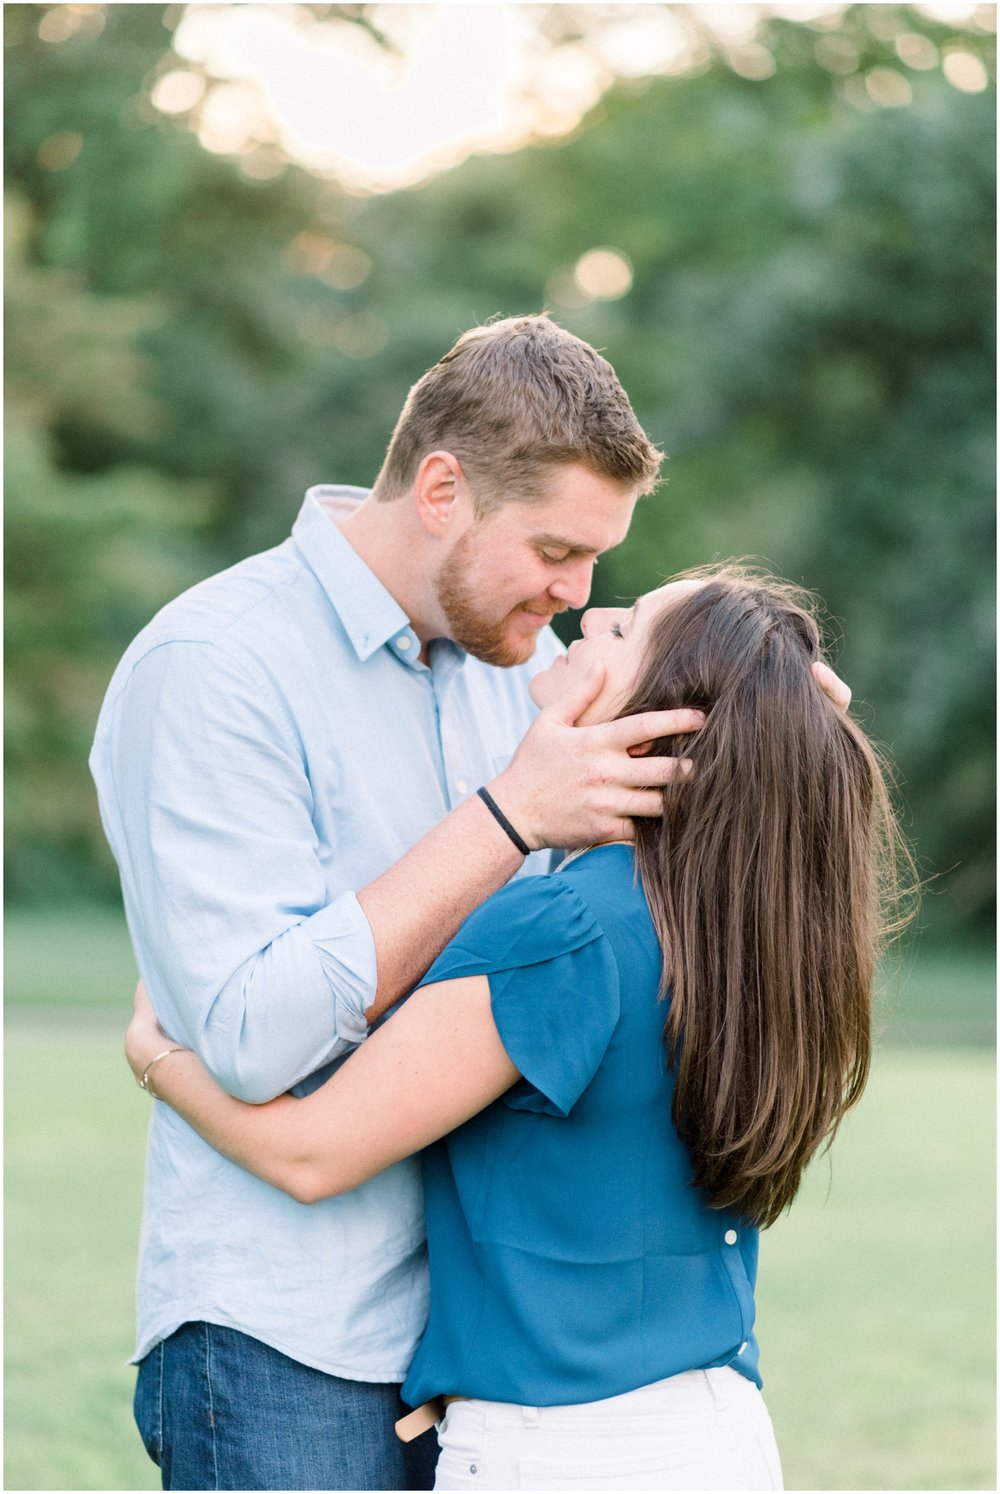 Summer Engagement Session at Hunting Hill Mansion - Krista Brackin Photography_0054.jpg